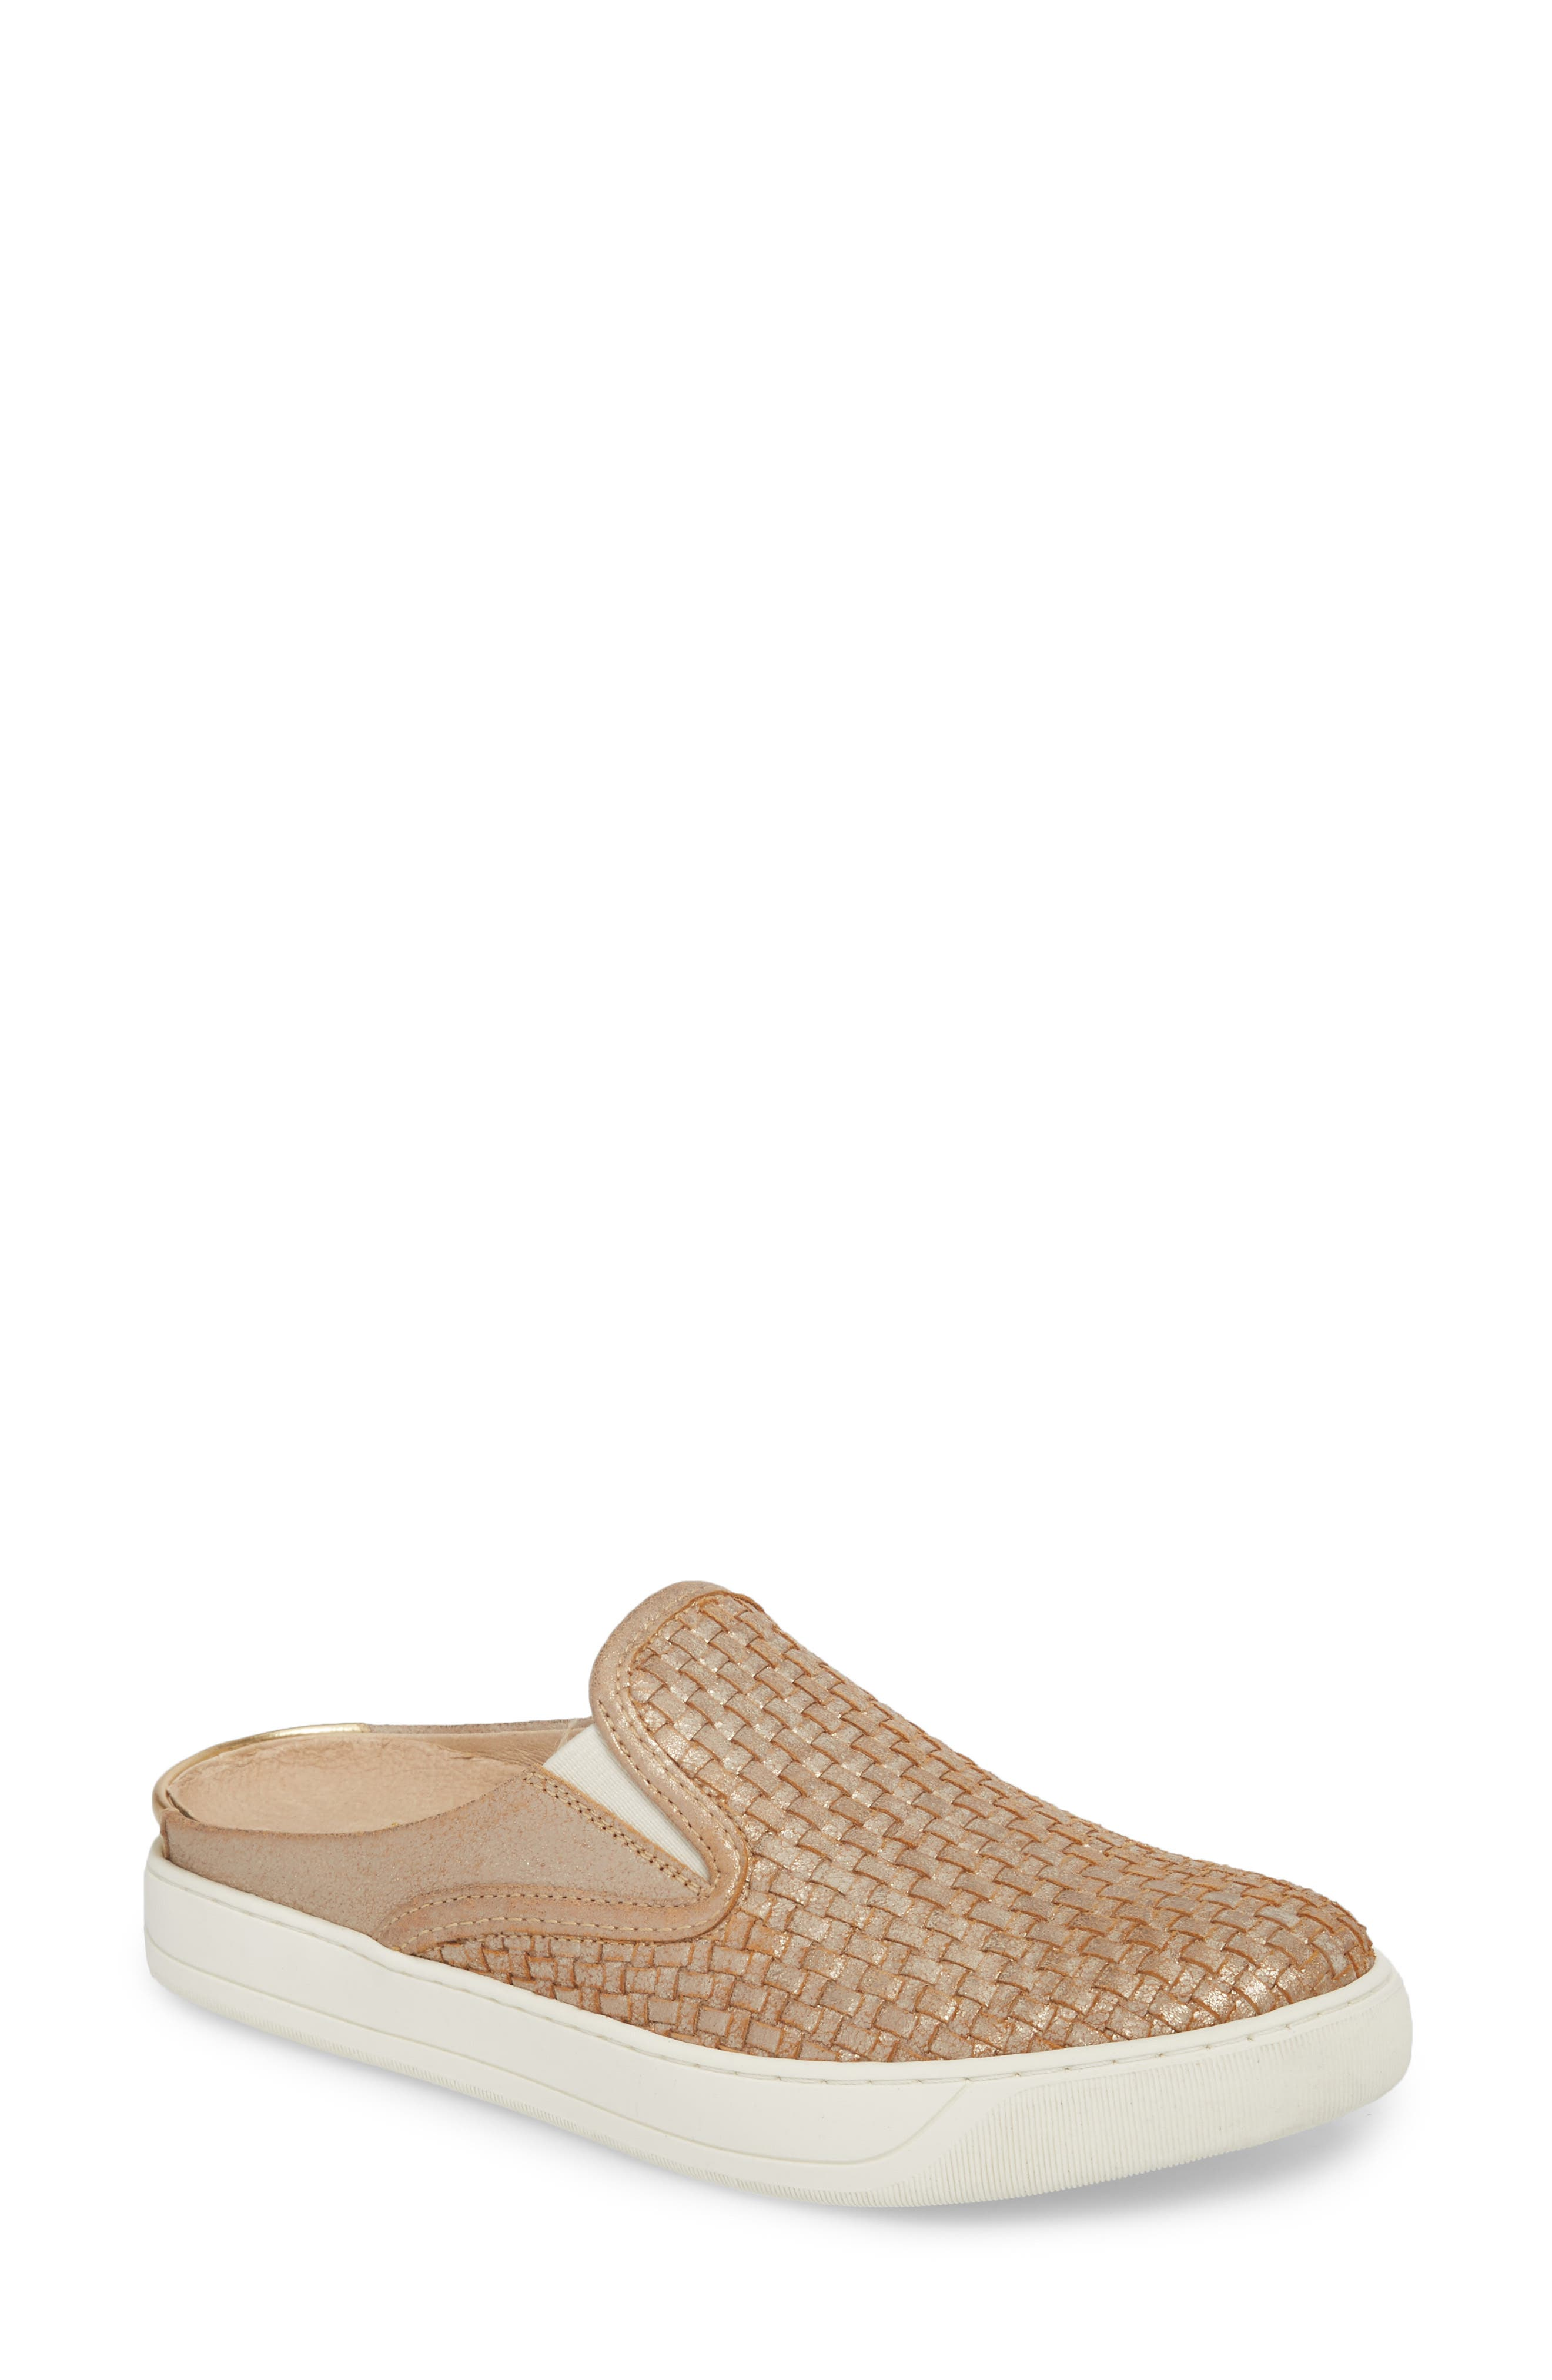 Evie Slip-On Sneaker,                         Main,                         color, Gold Leather